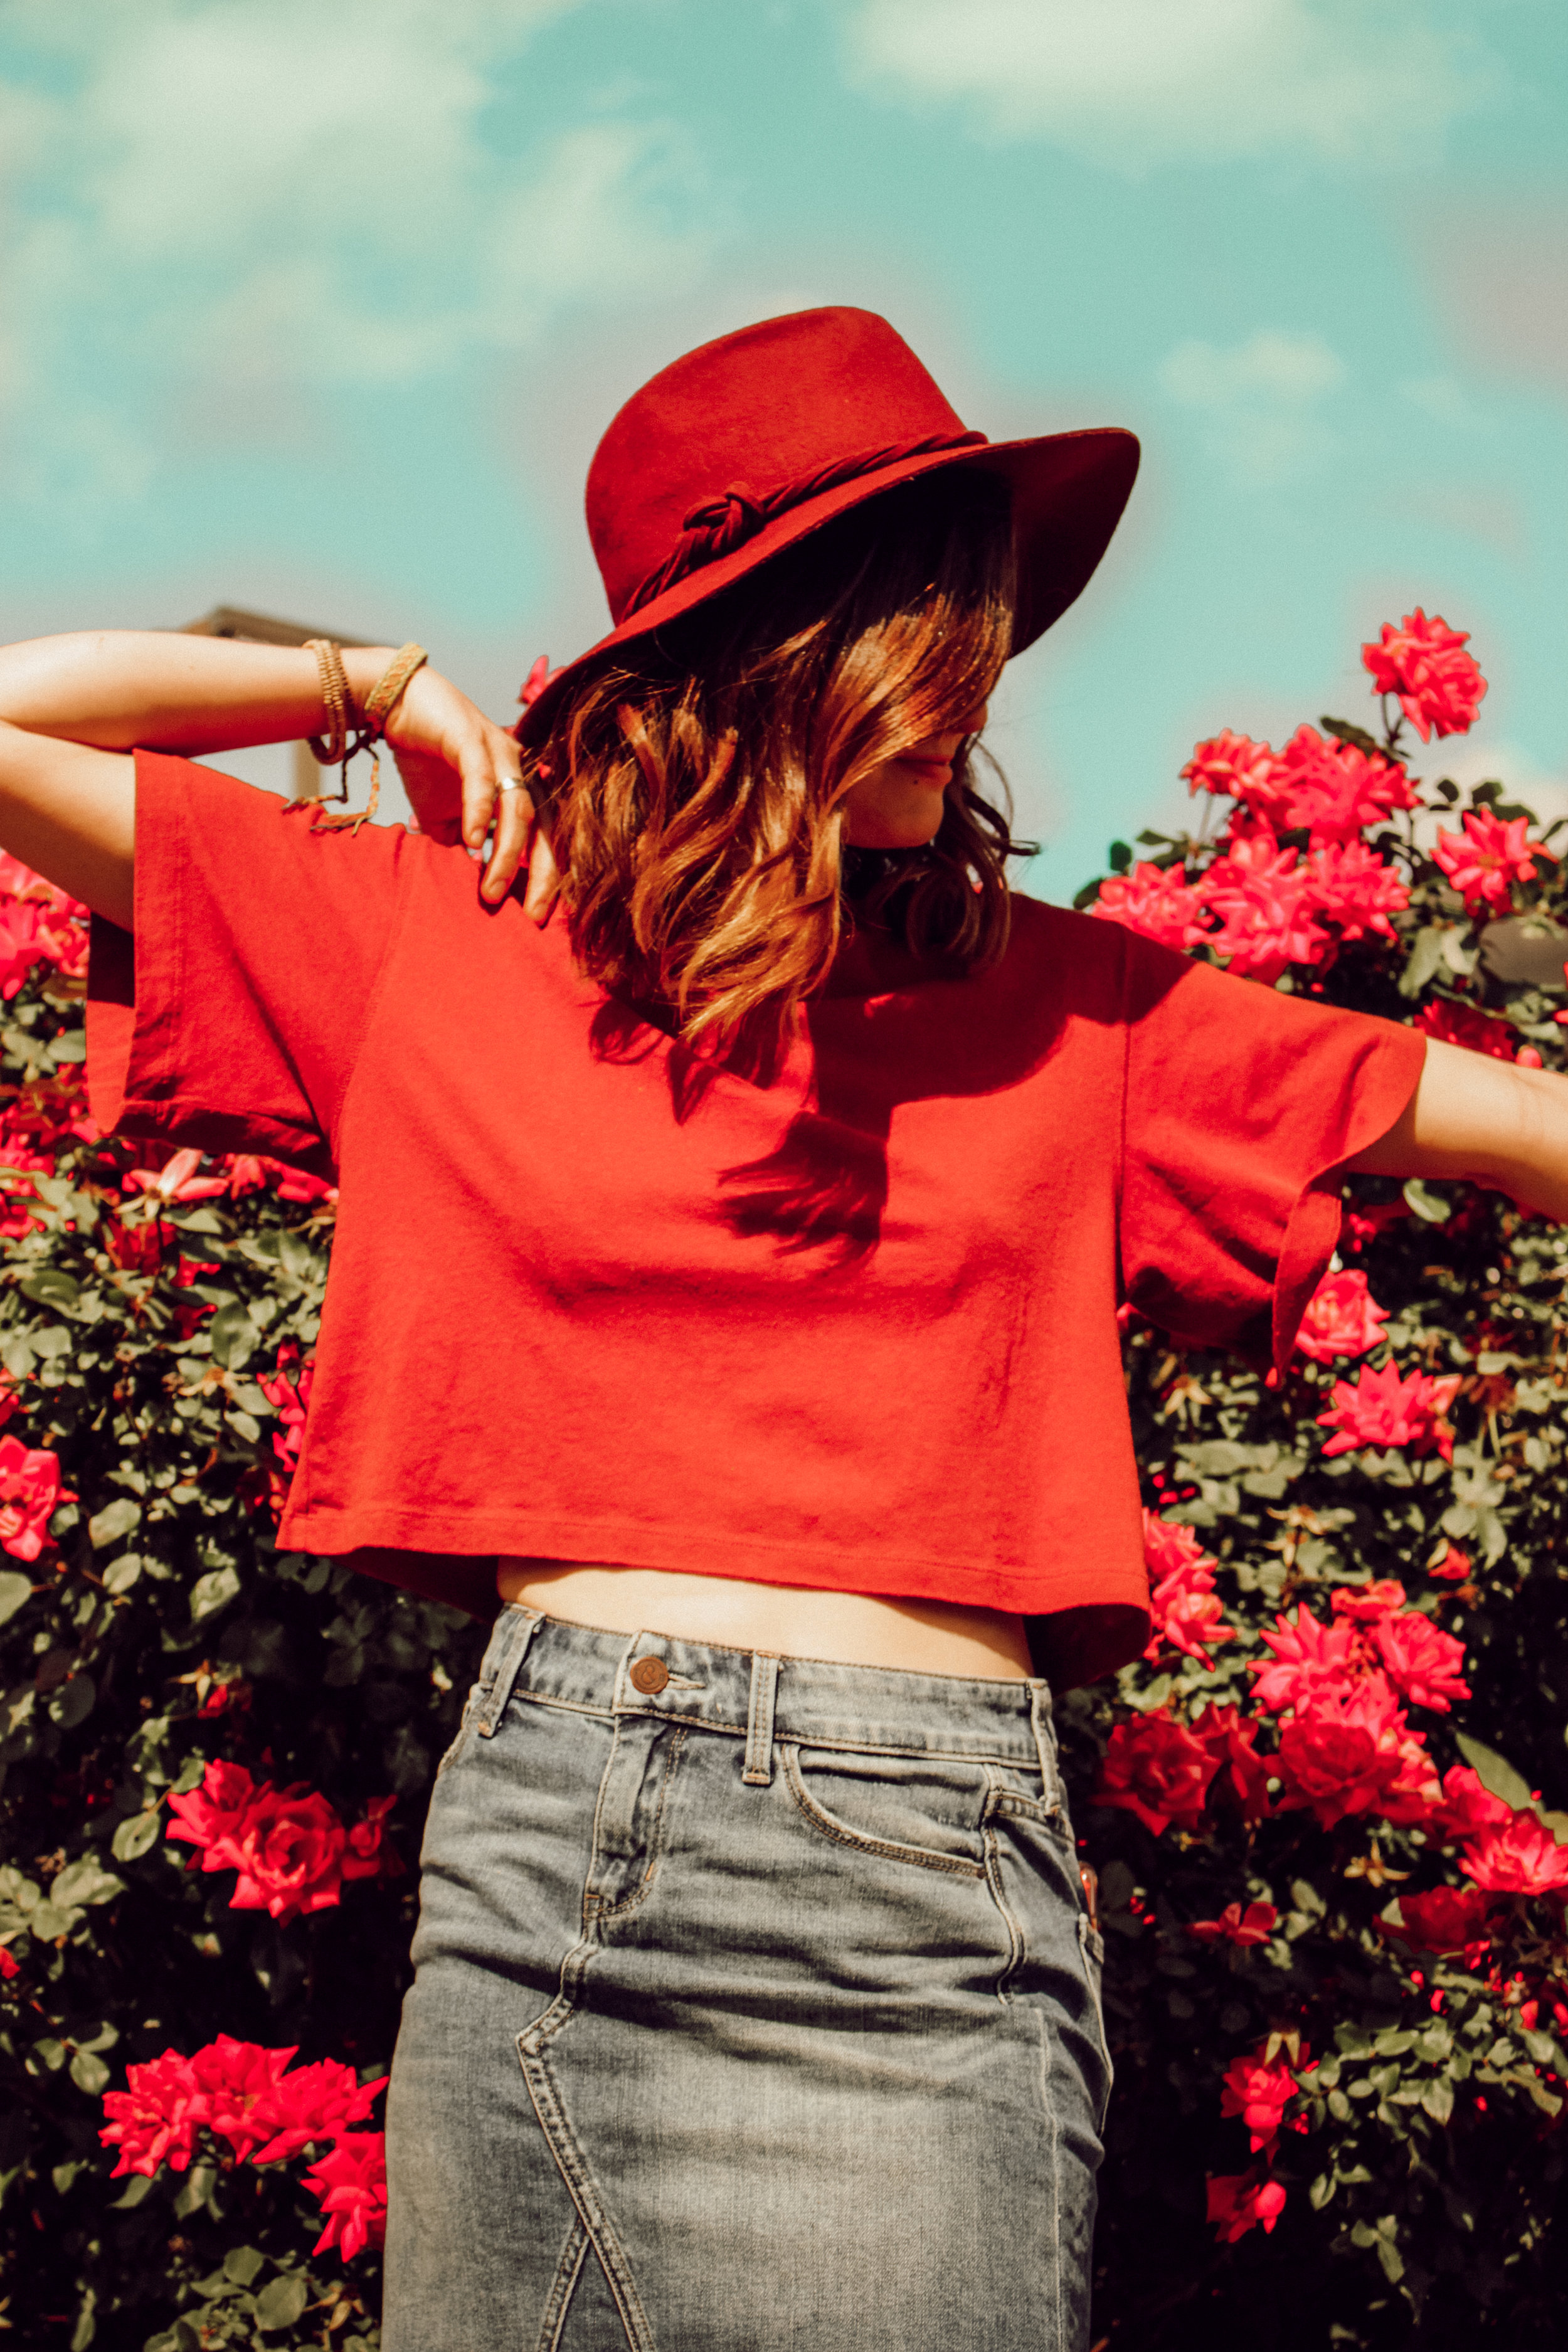 Distressed Jeans // How to // Style Tips // Summer // Bohemian Fashion // Blog // Adventure // Free People // Shoes